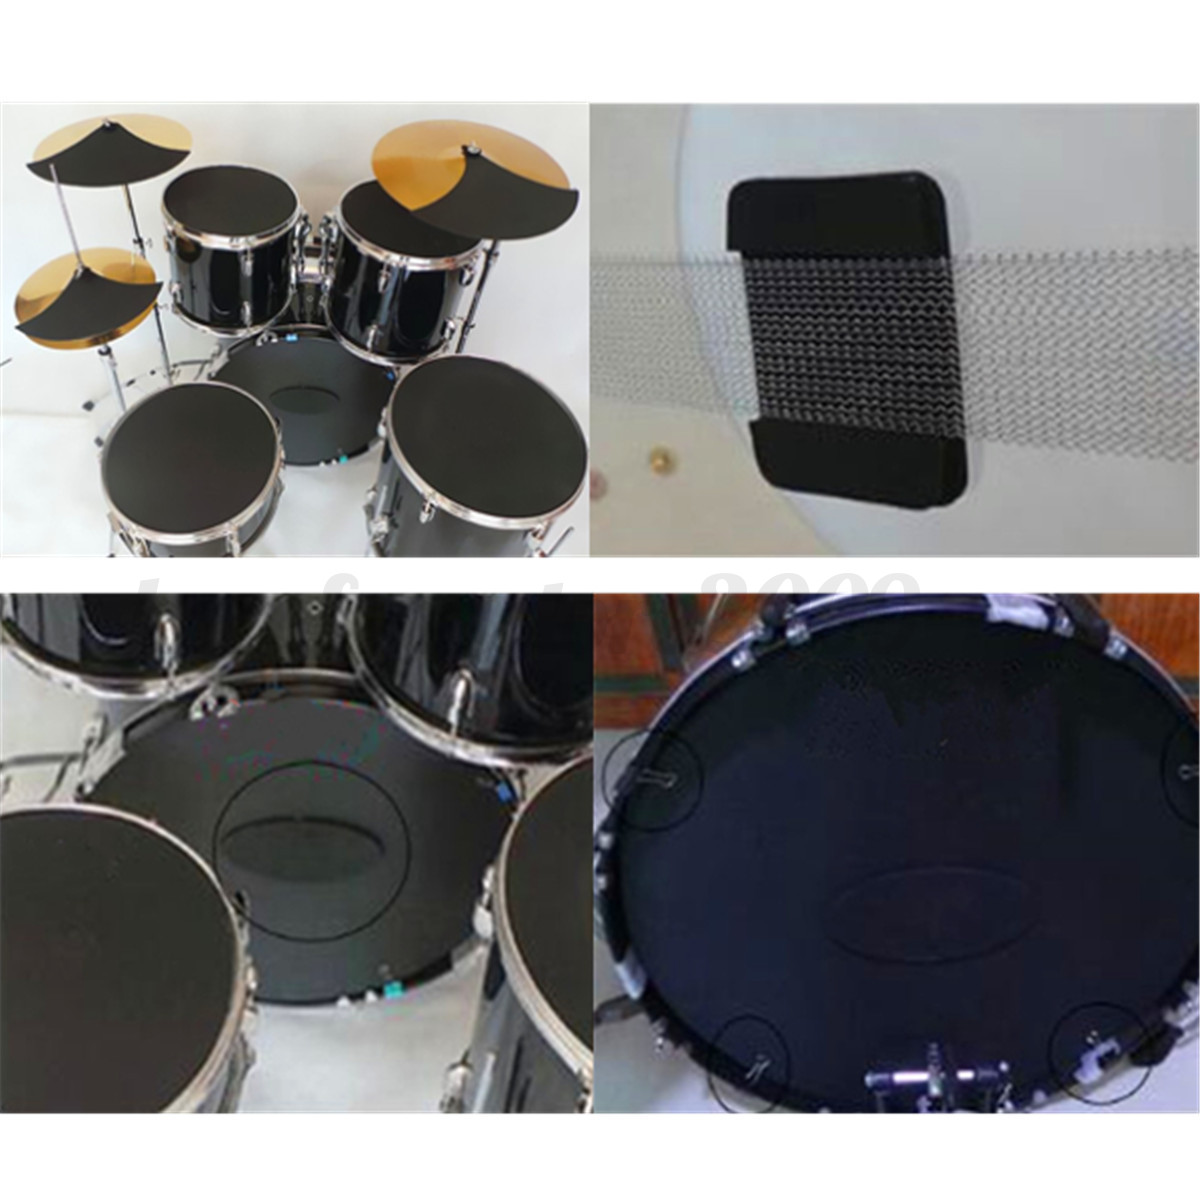 10x bass drums sound off quiet mute silencer drumming rubber practice pad set ebay. Black Bedroom Furniture Sets. Home Design Ideas